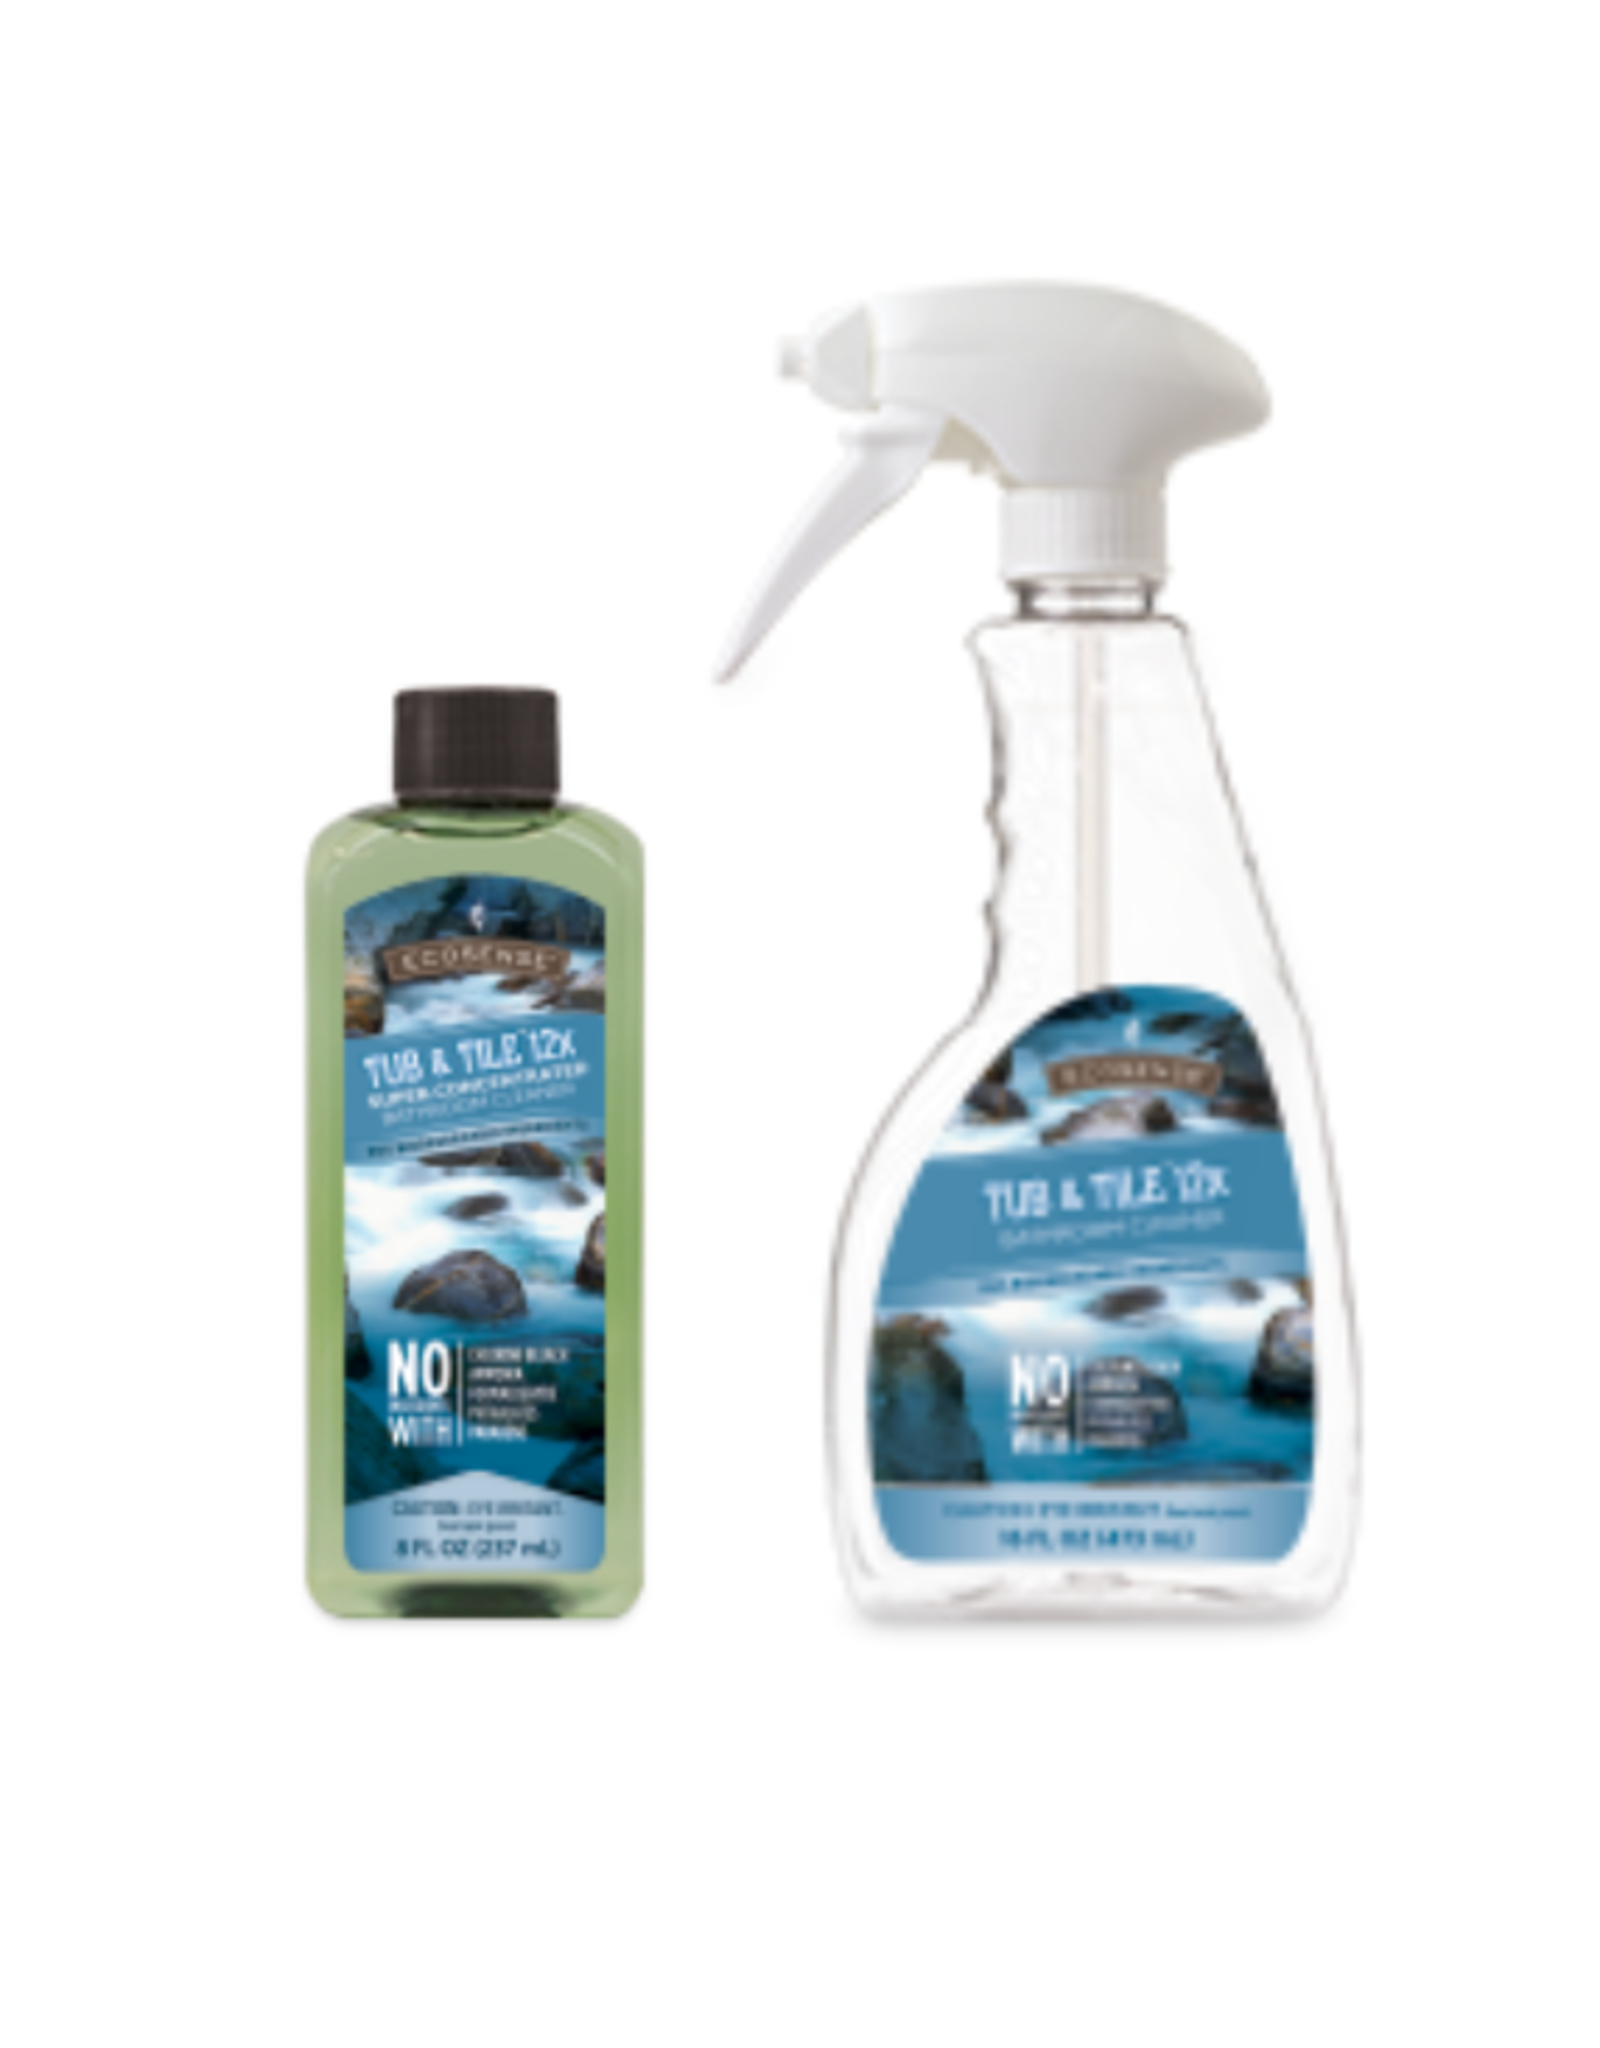 Sargent Steam Cleaners TUB & TILE SET